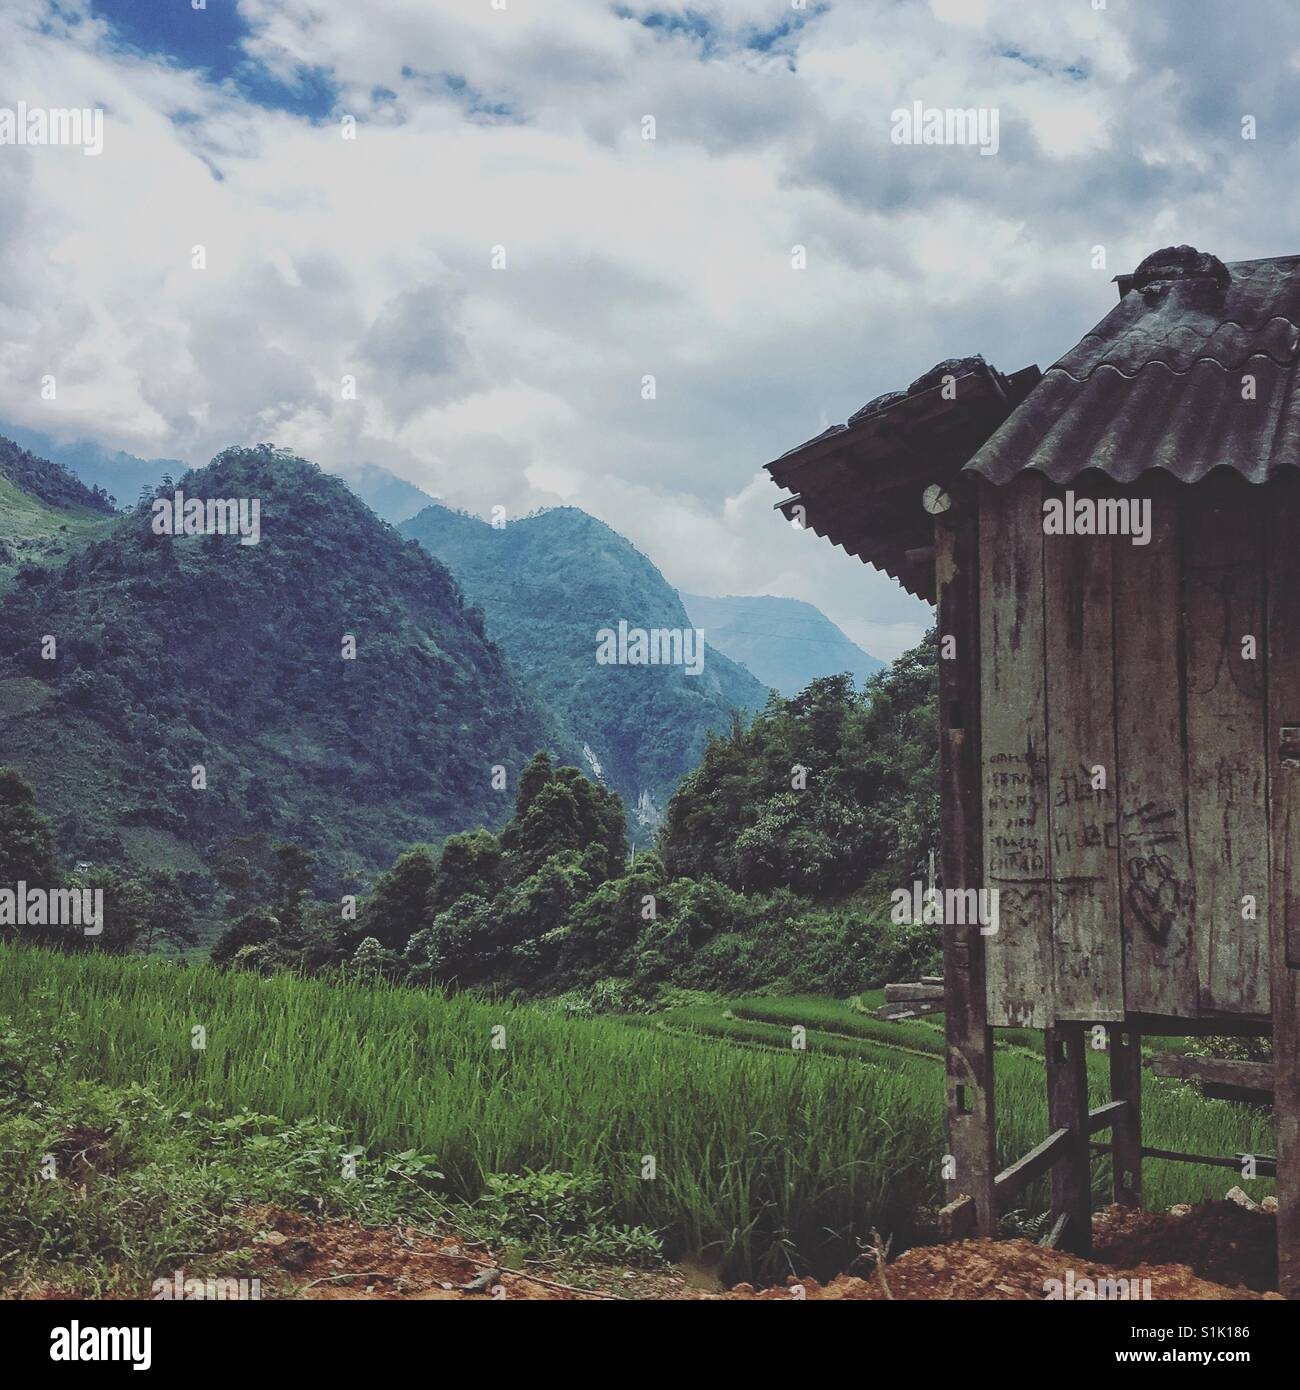 Rice farmer's hut amongst the paddy fields in the Vietnamese mountains near Sapa Stock Photo